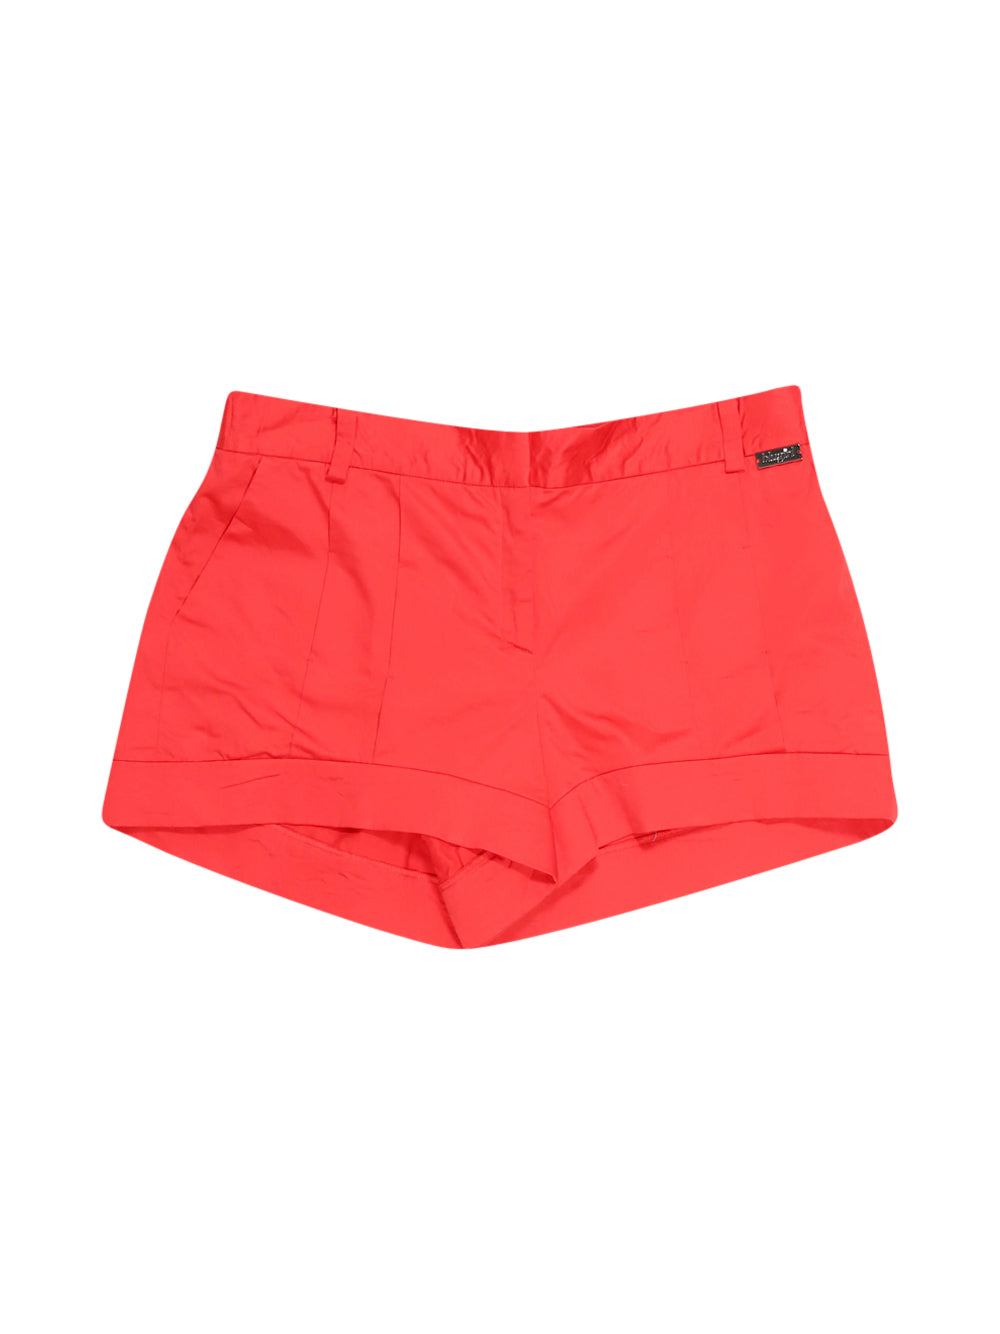 Front photo of Preloved Blugirl Red Woman's shorts - size 10/M